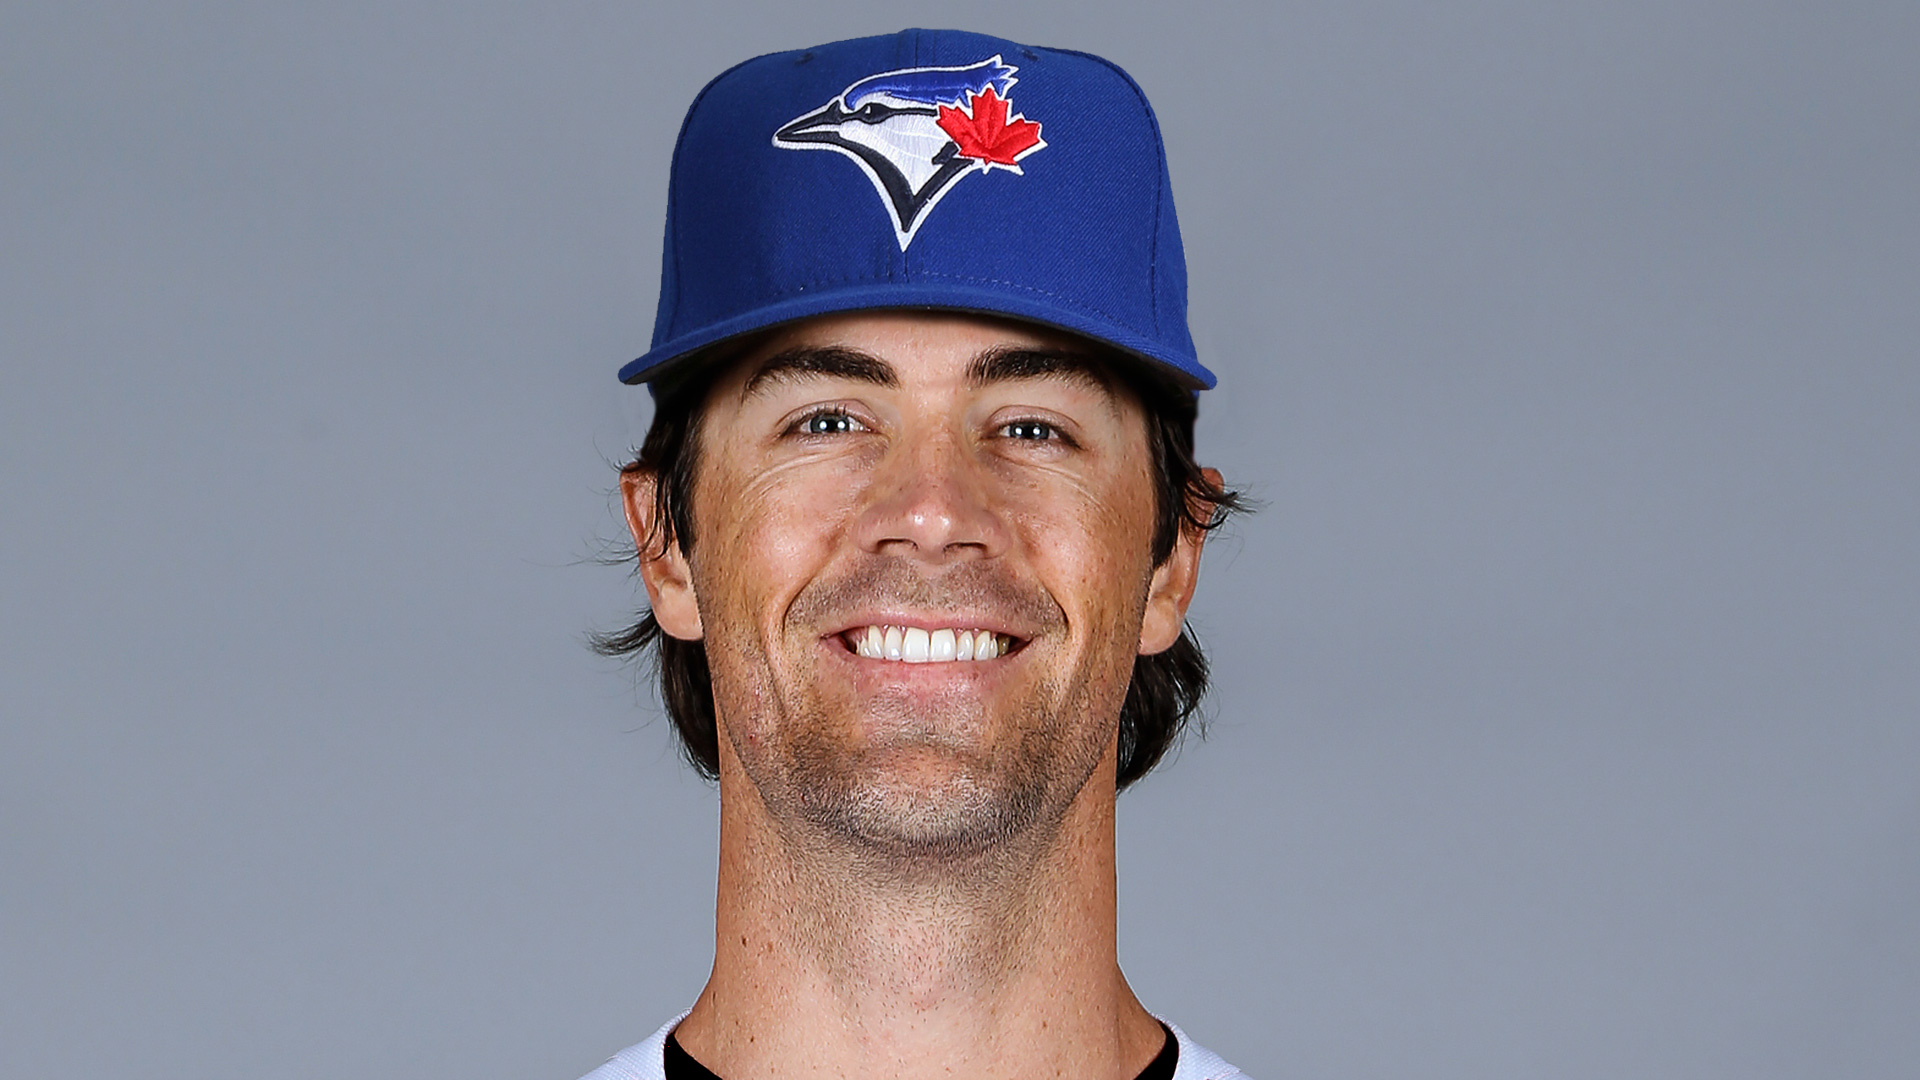 Hamels-BLUEJAYS-070615-MLB-FTR.jpg